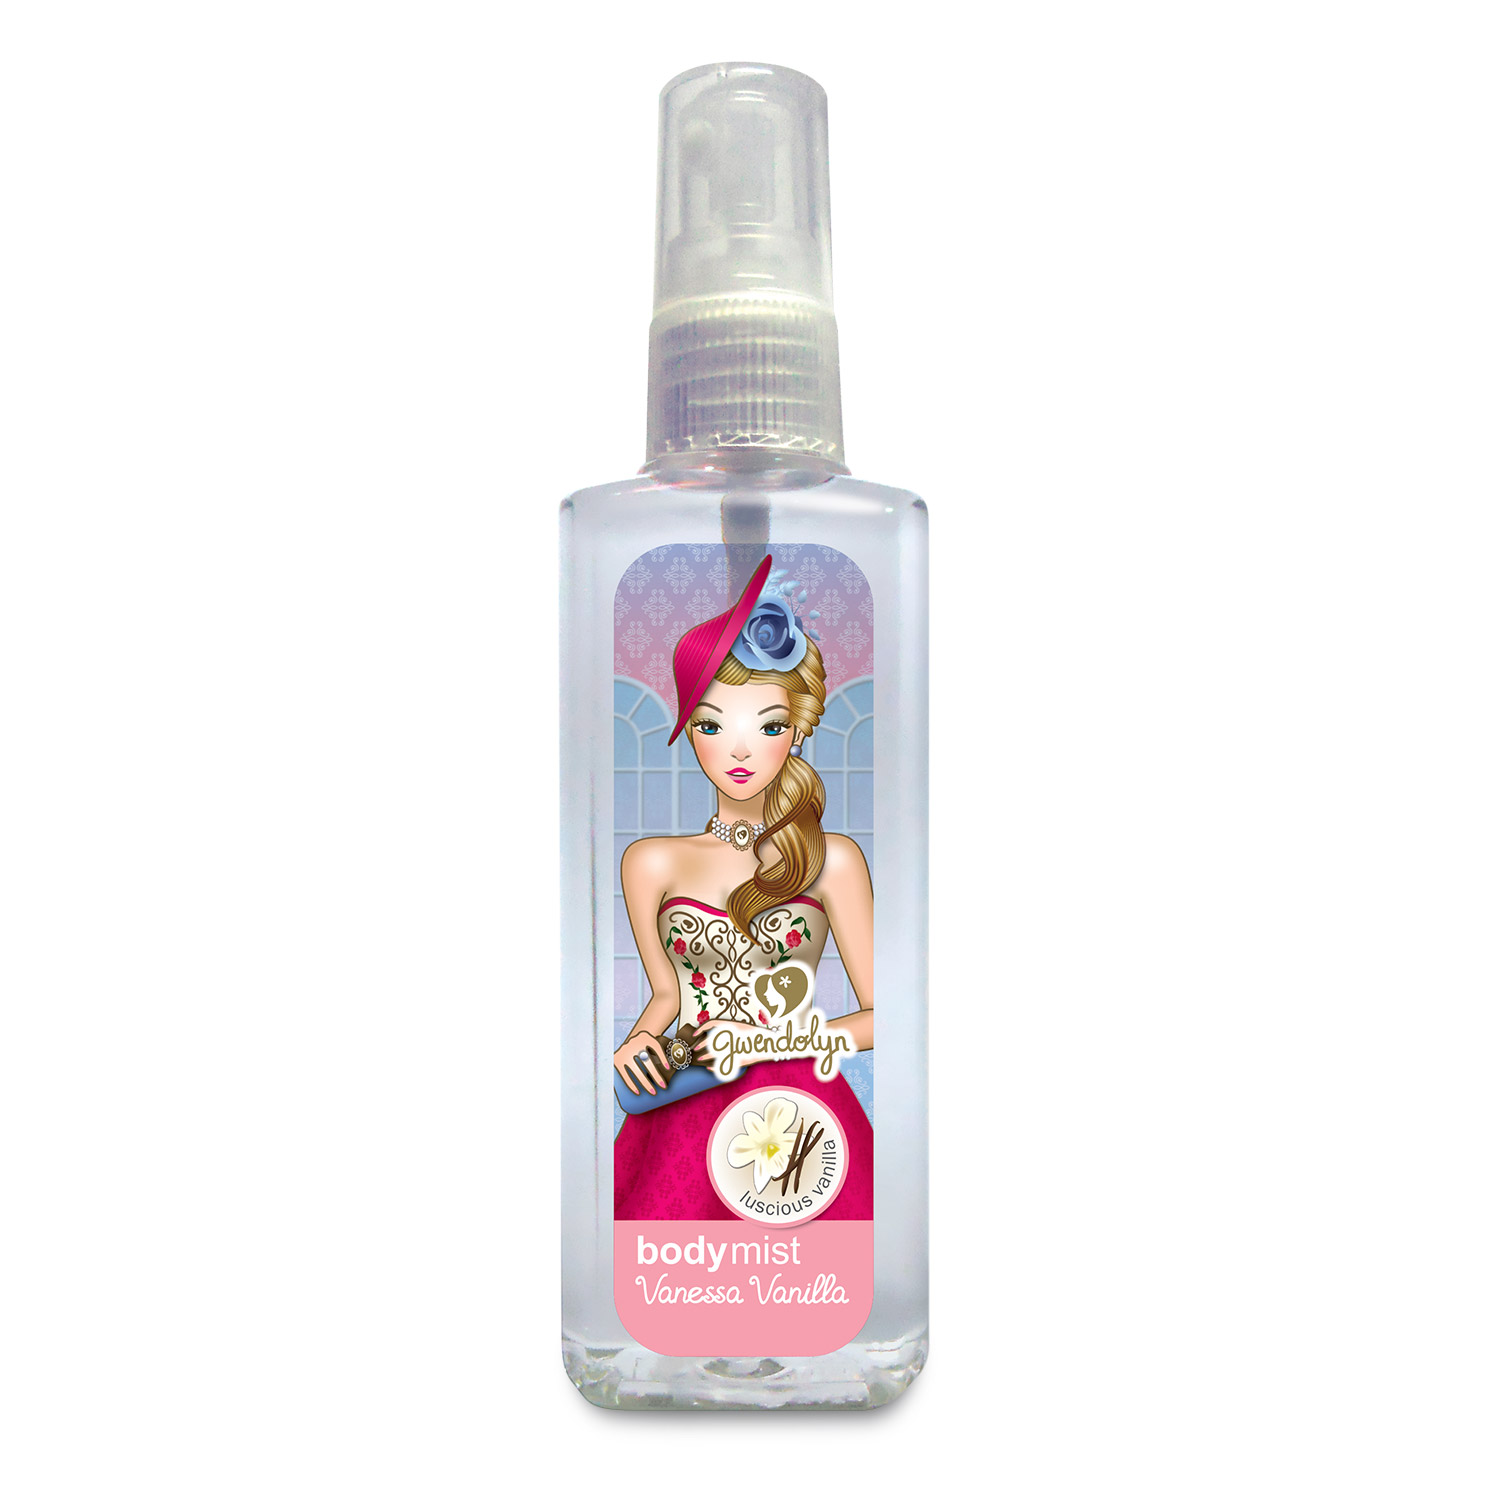 Gwendolyn Body Mist Vanessa Vanilla 100ml